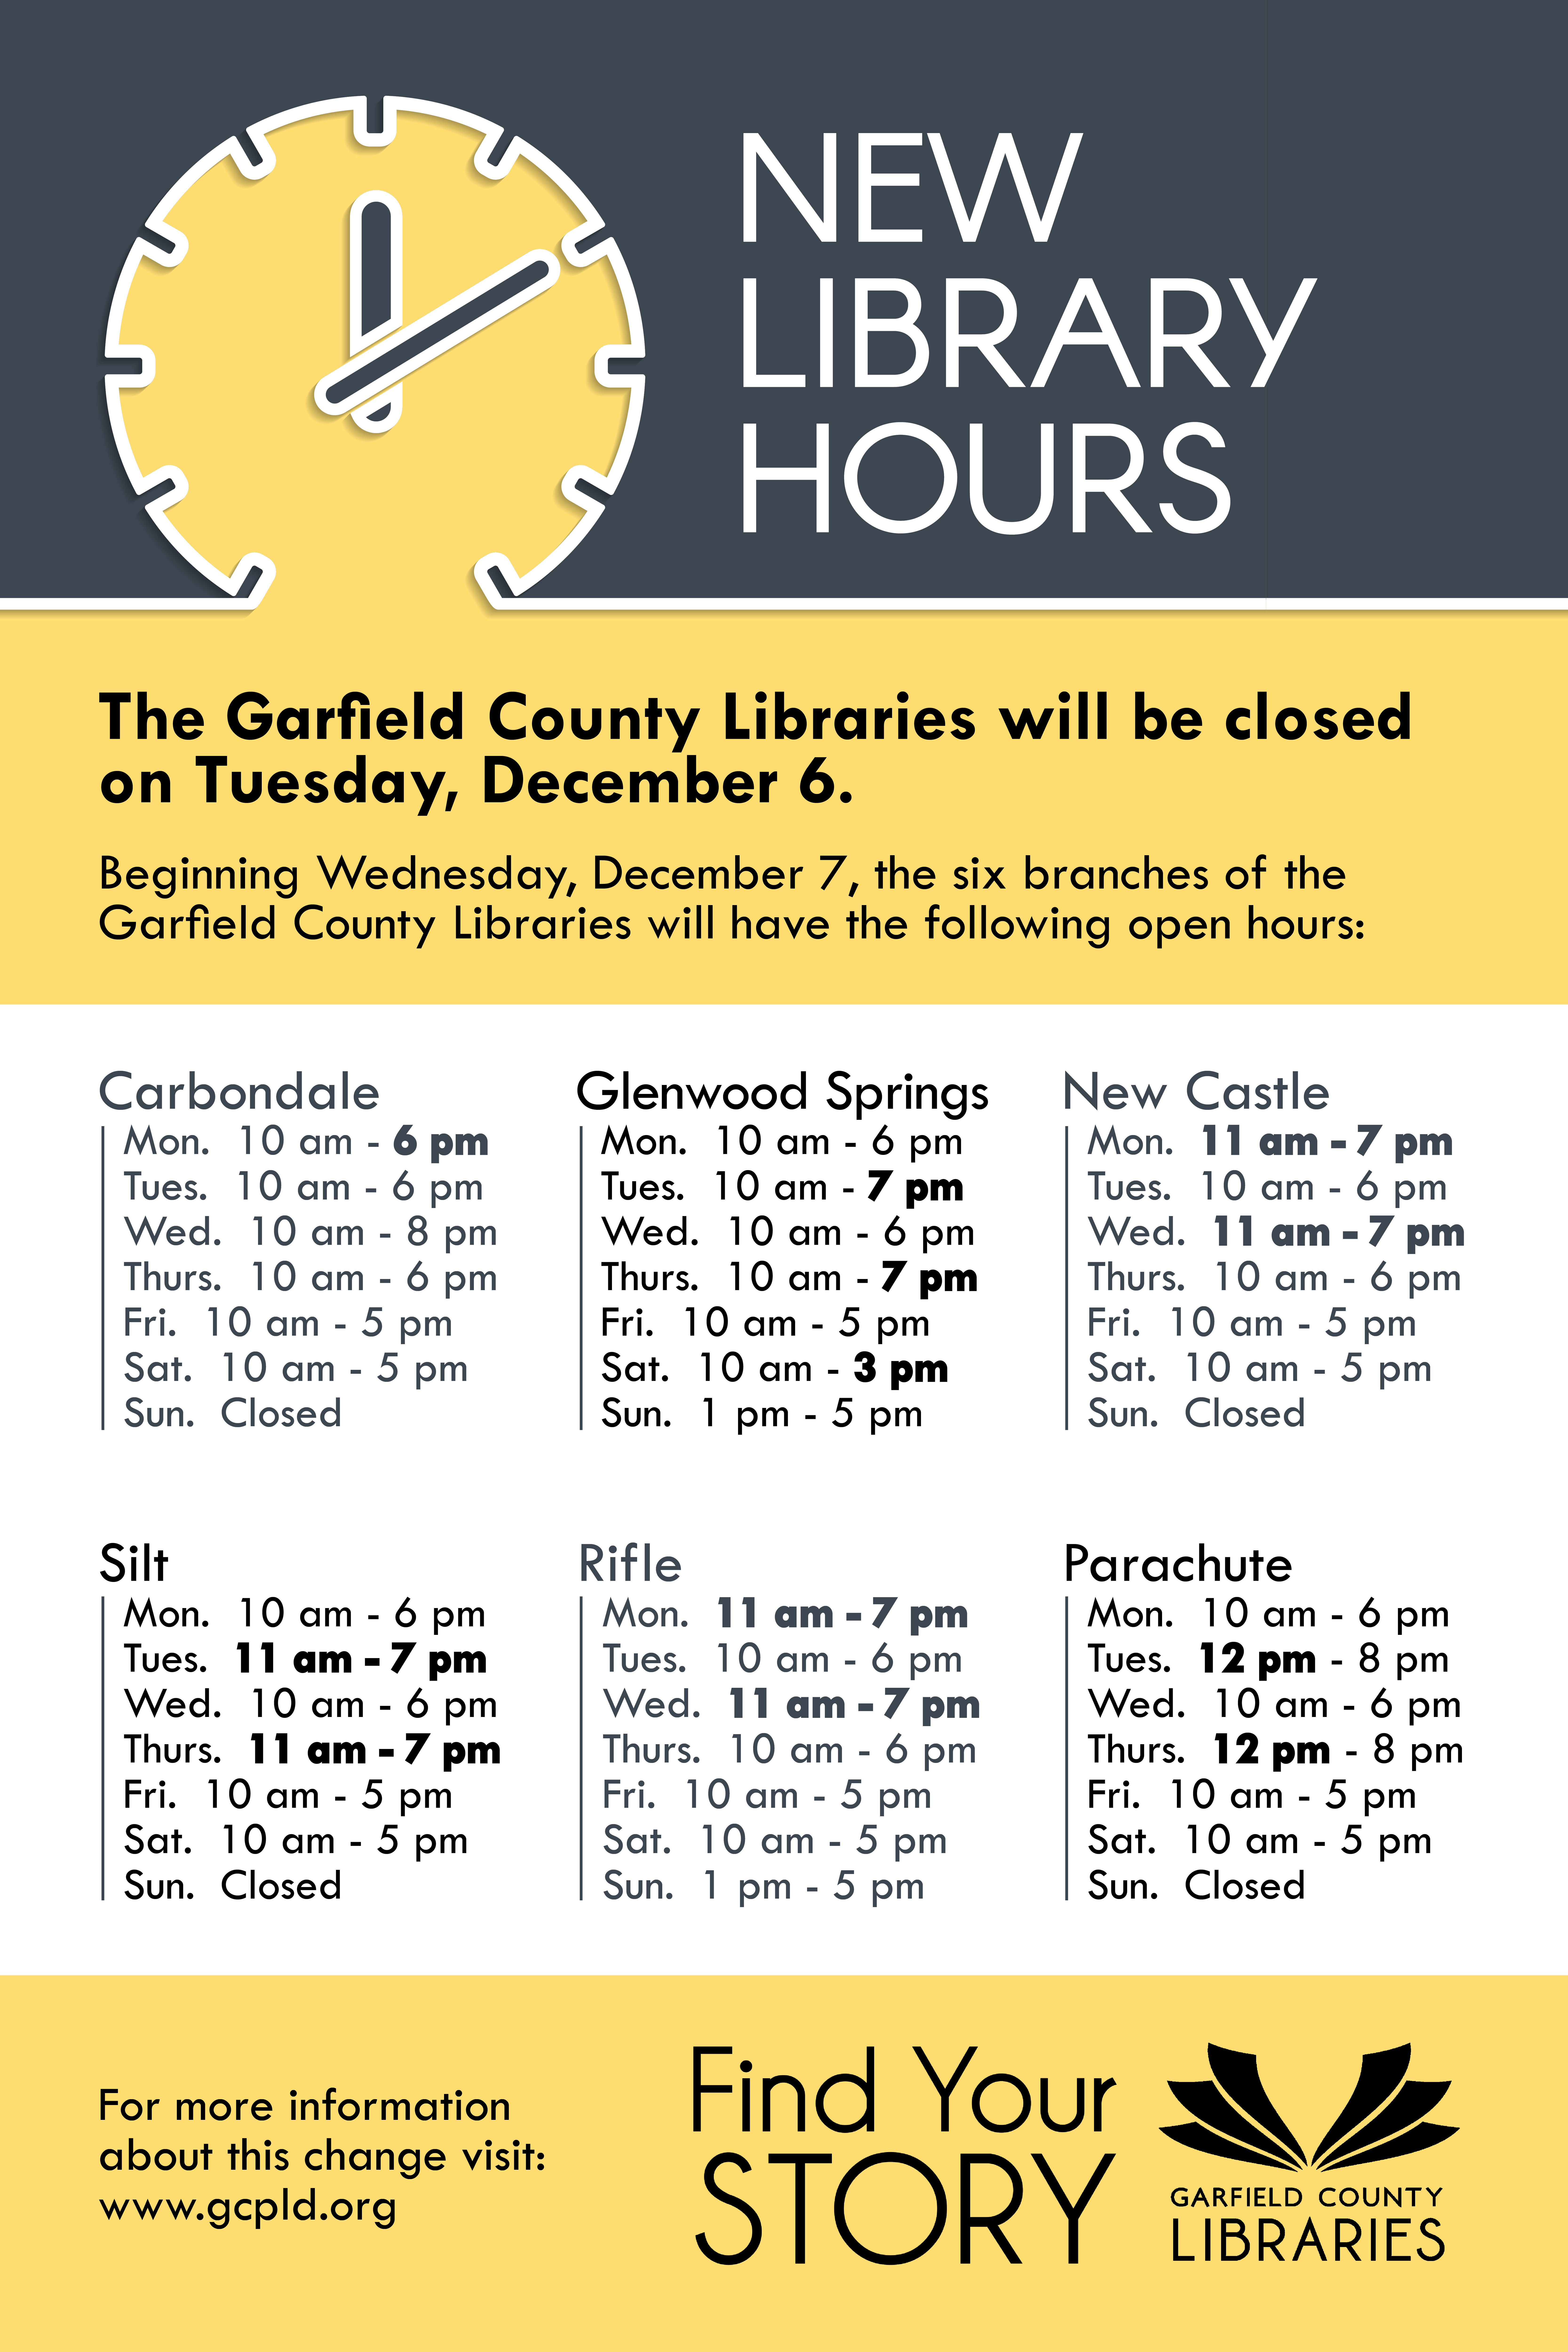 Garfield County Libraries operating hours change